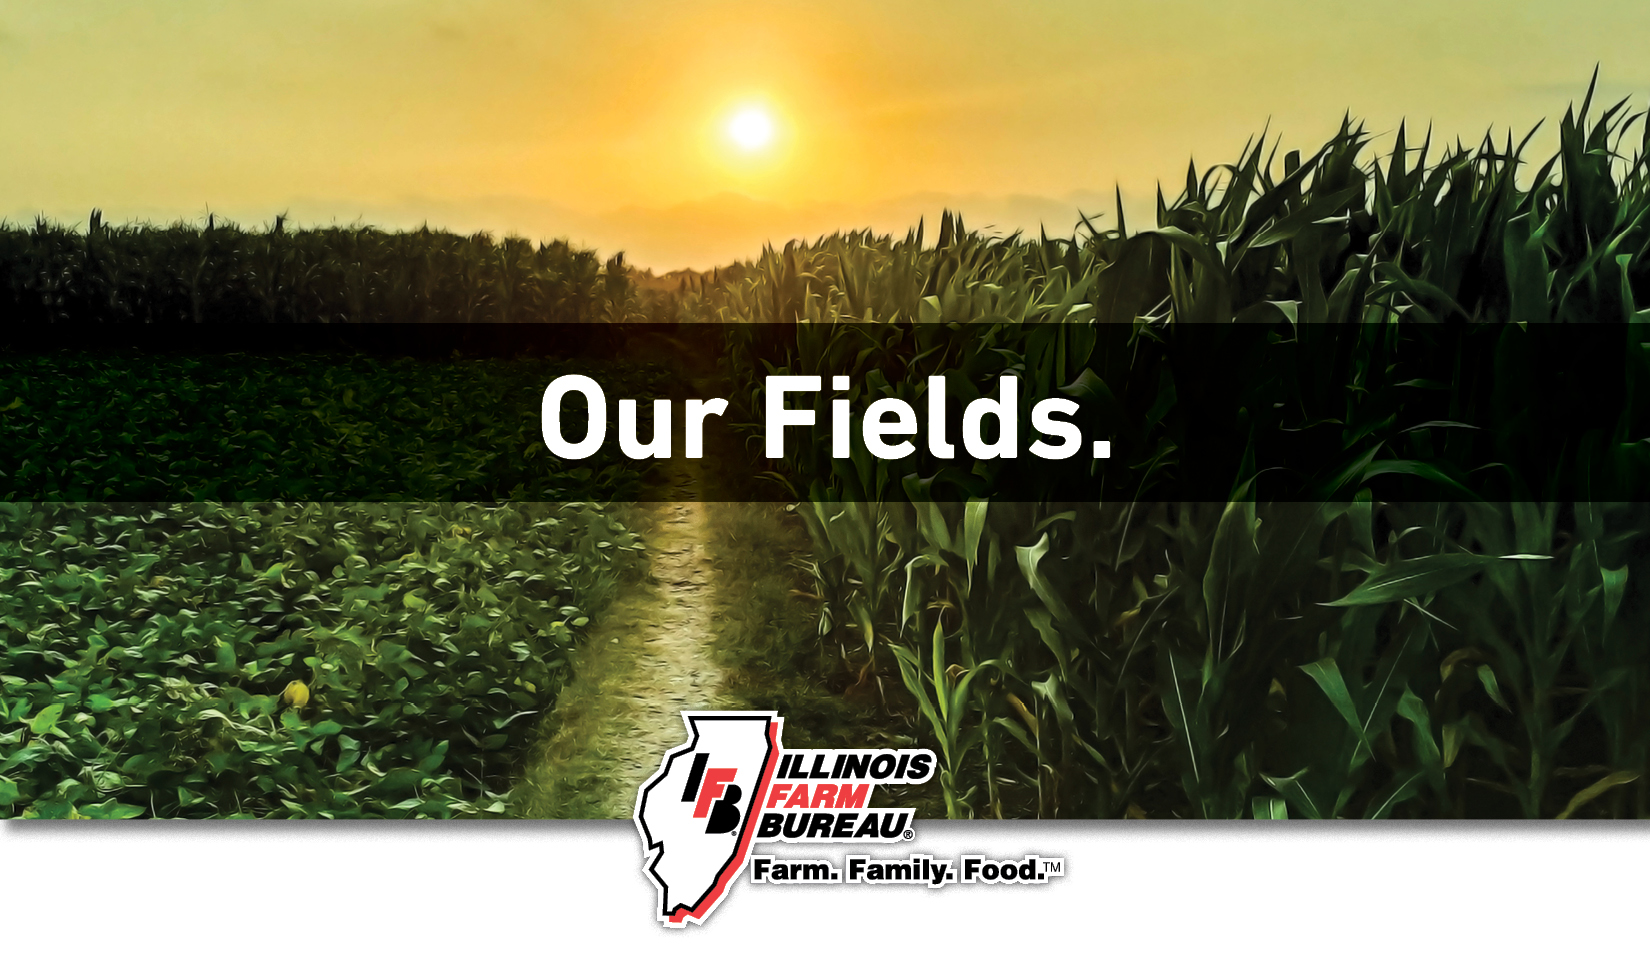 Our Fields